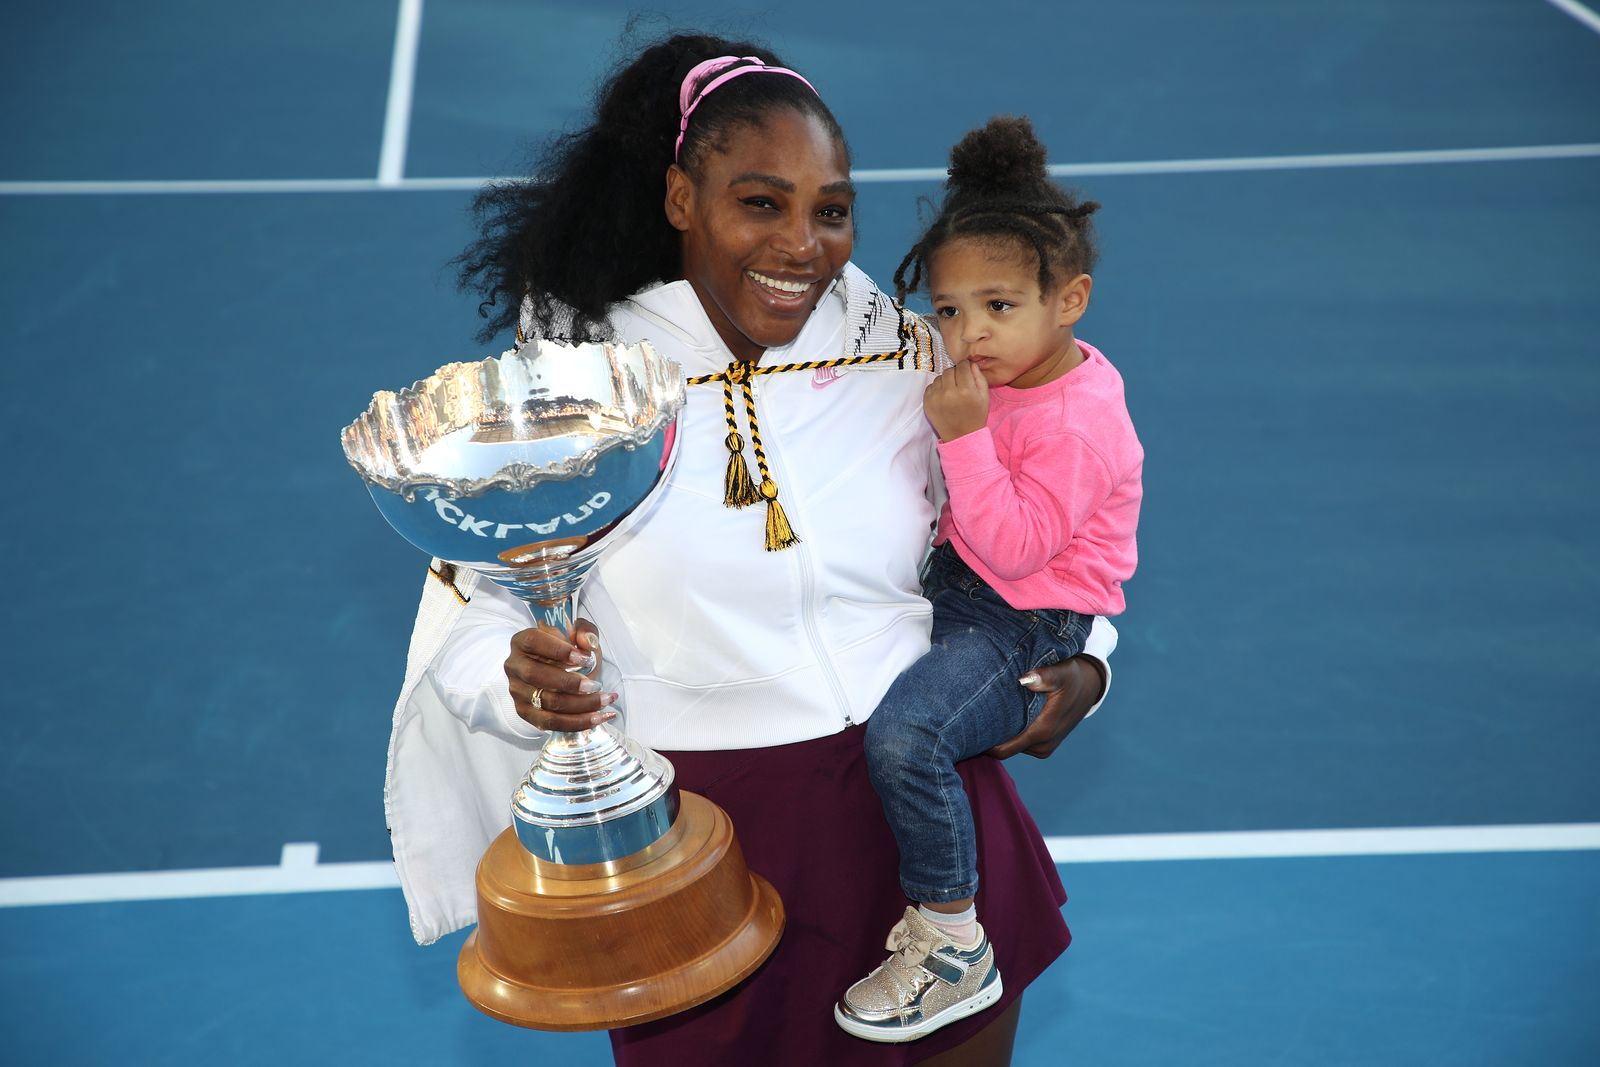 Serena Williams holds daughter Alexis Olympia and her trophy following the Women's Final at the 2020 Women's ASB Classic on January 12, 2020 | Photo: Getty Images